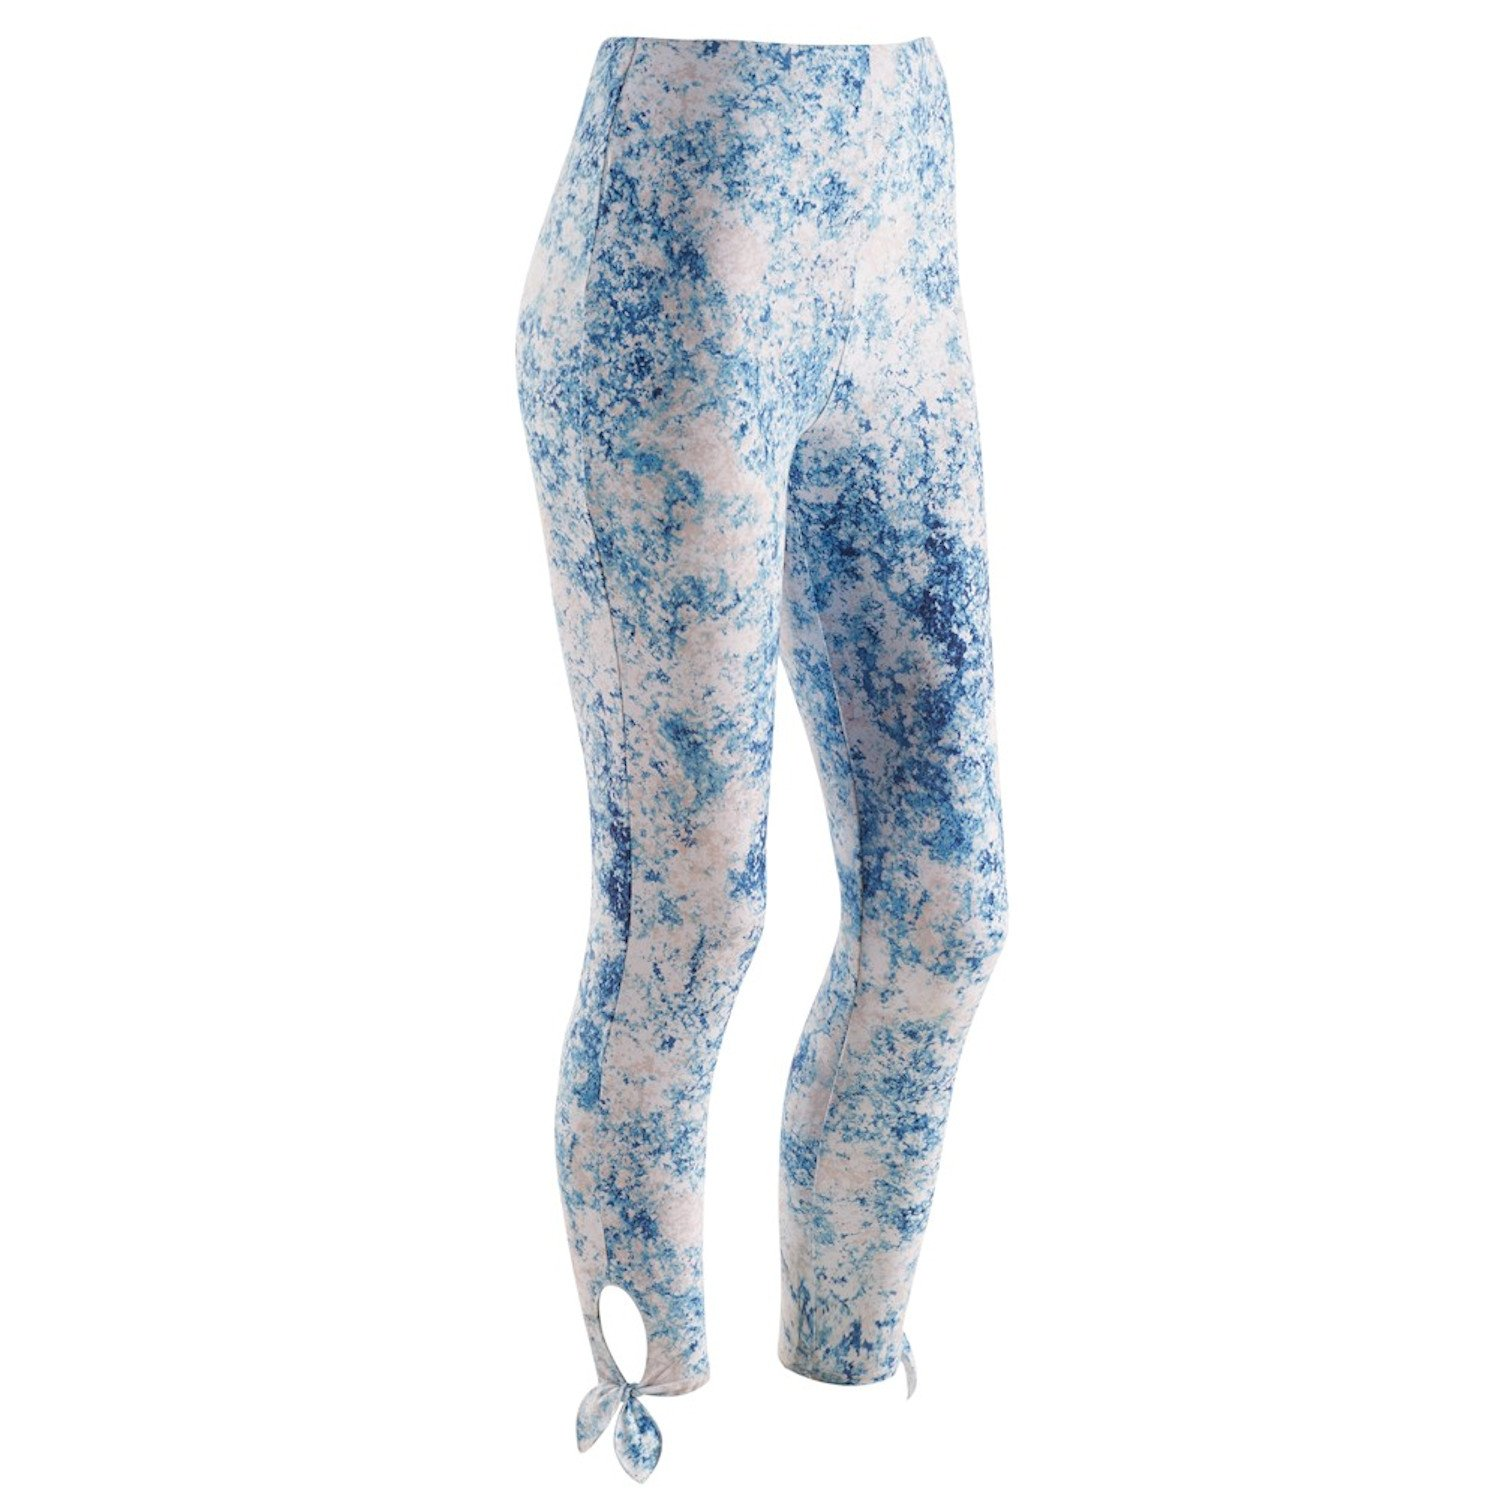 Women's Leggings- Tie-Ankle Support Waist Cropped Pants - Mineral Cloud - Xl